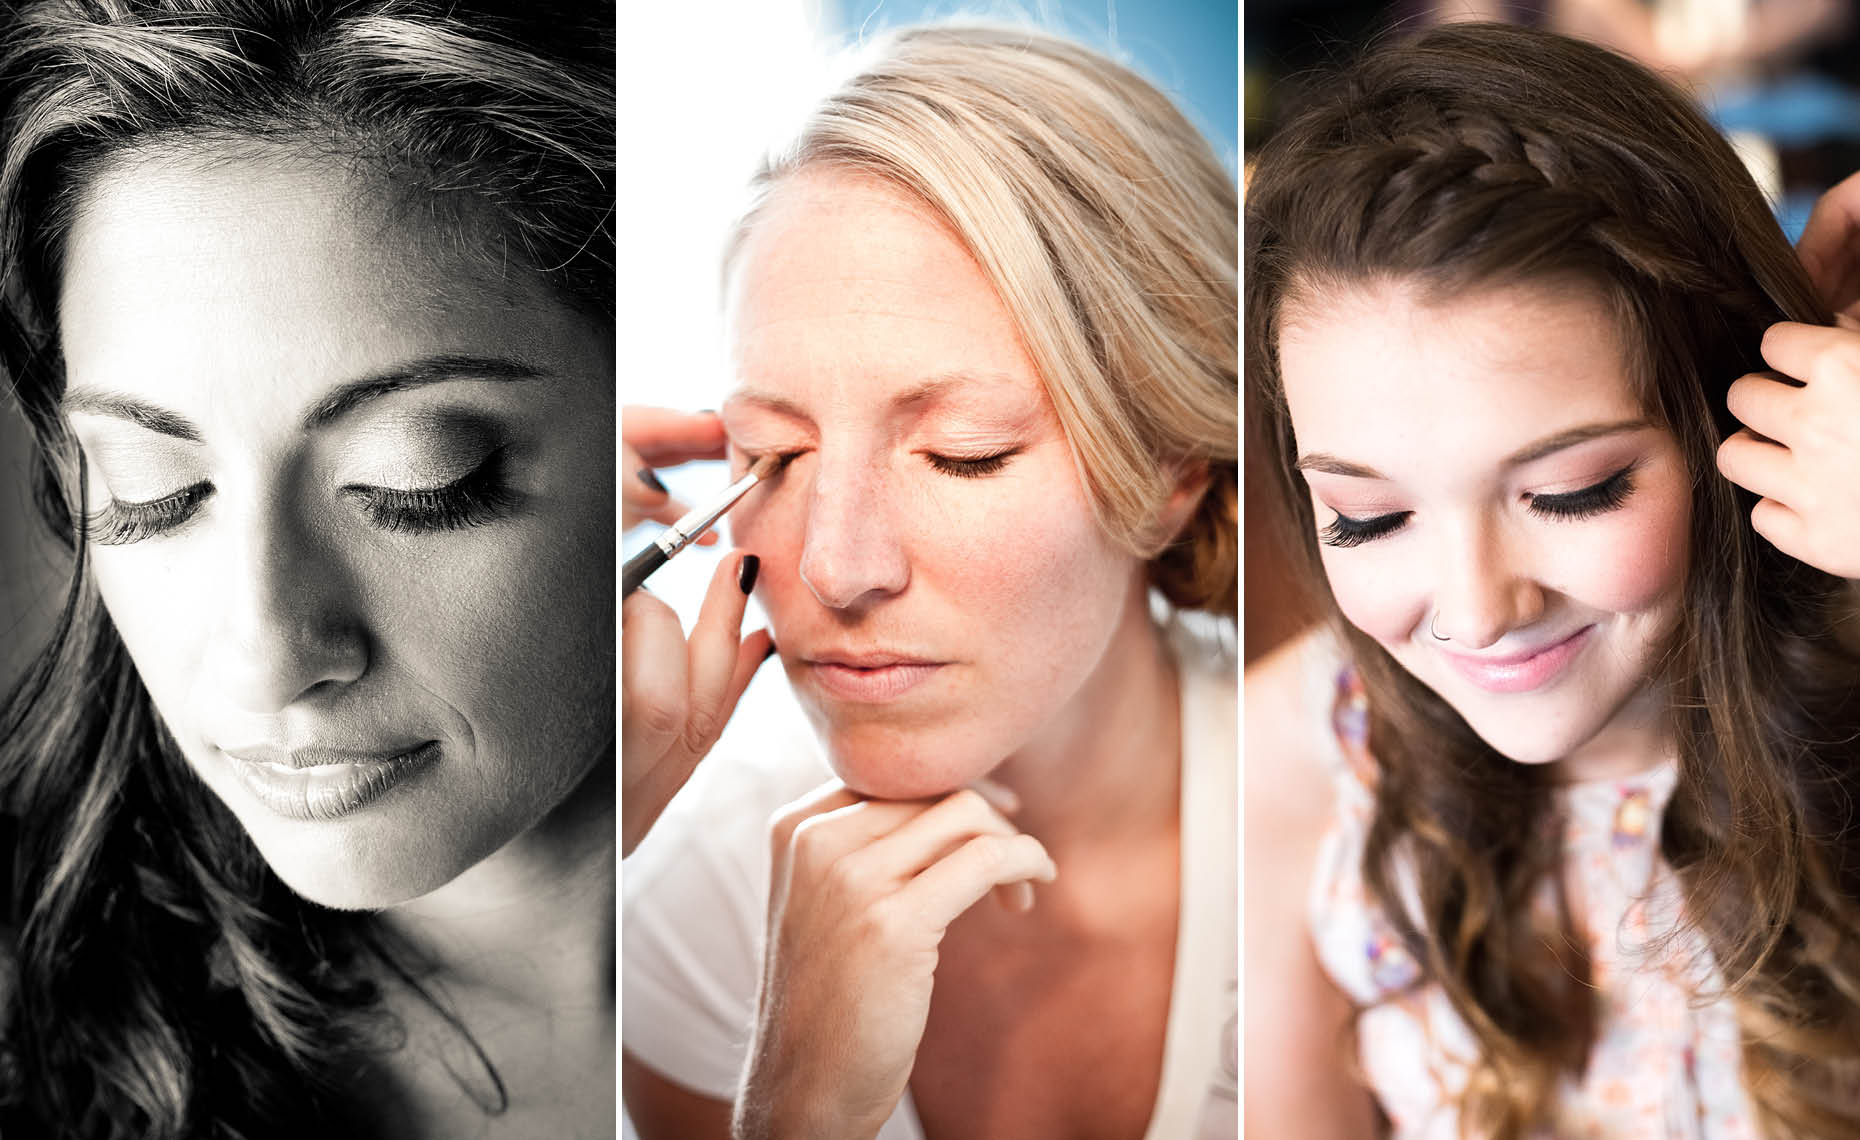 whistler wedding photographer shows brides and bridesmaids getting ready